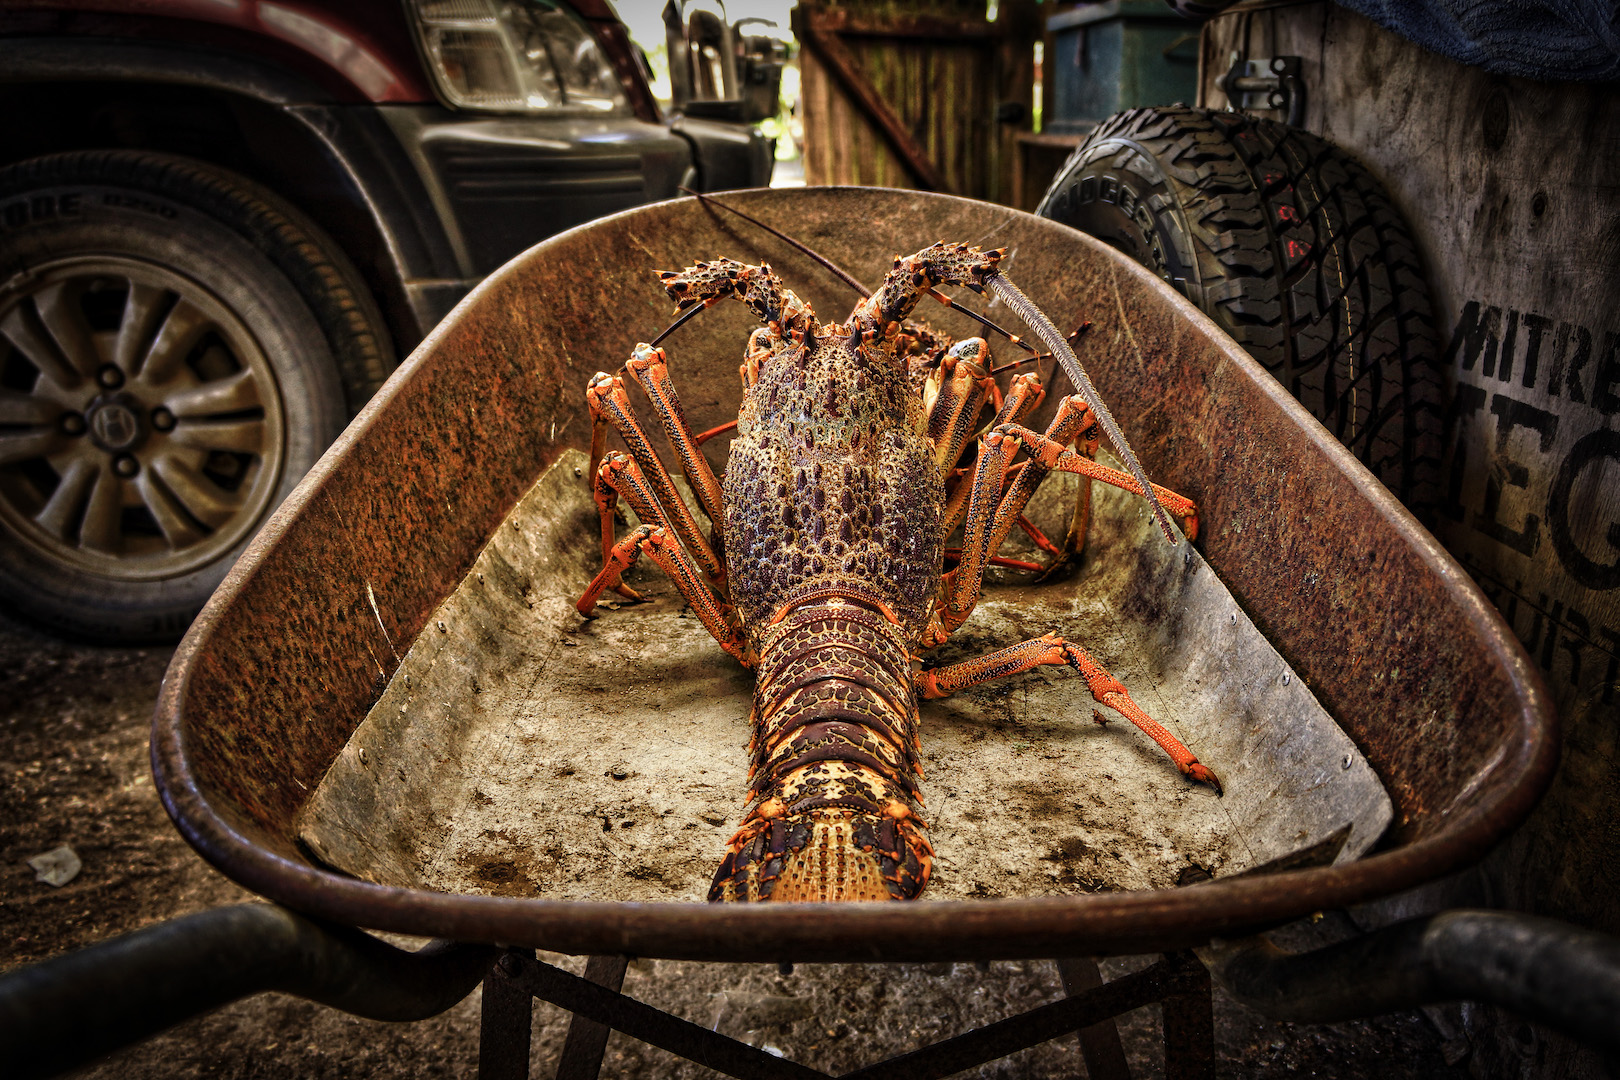 Chatham Islands Crayfish